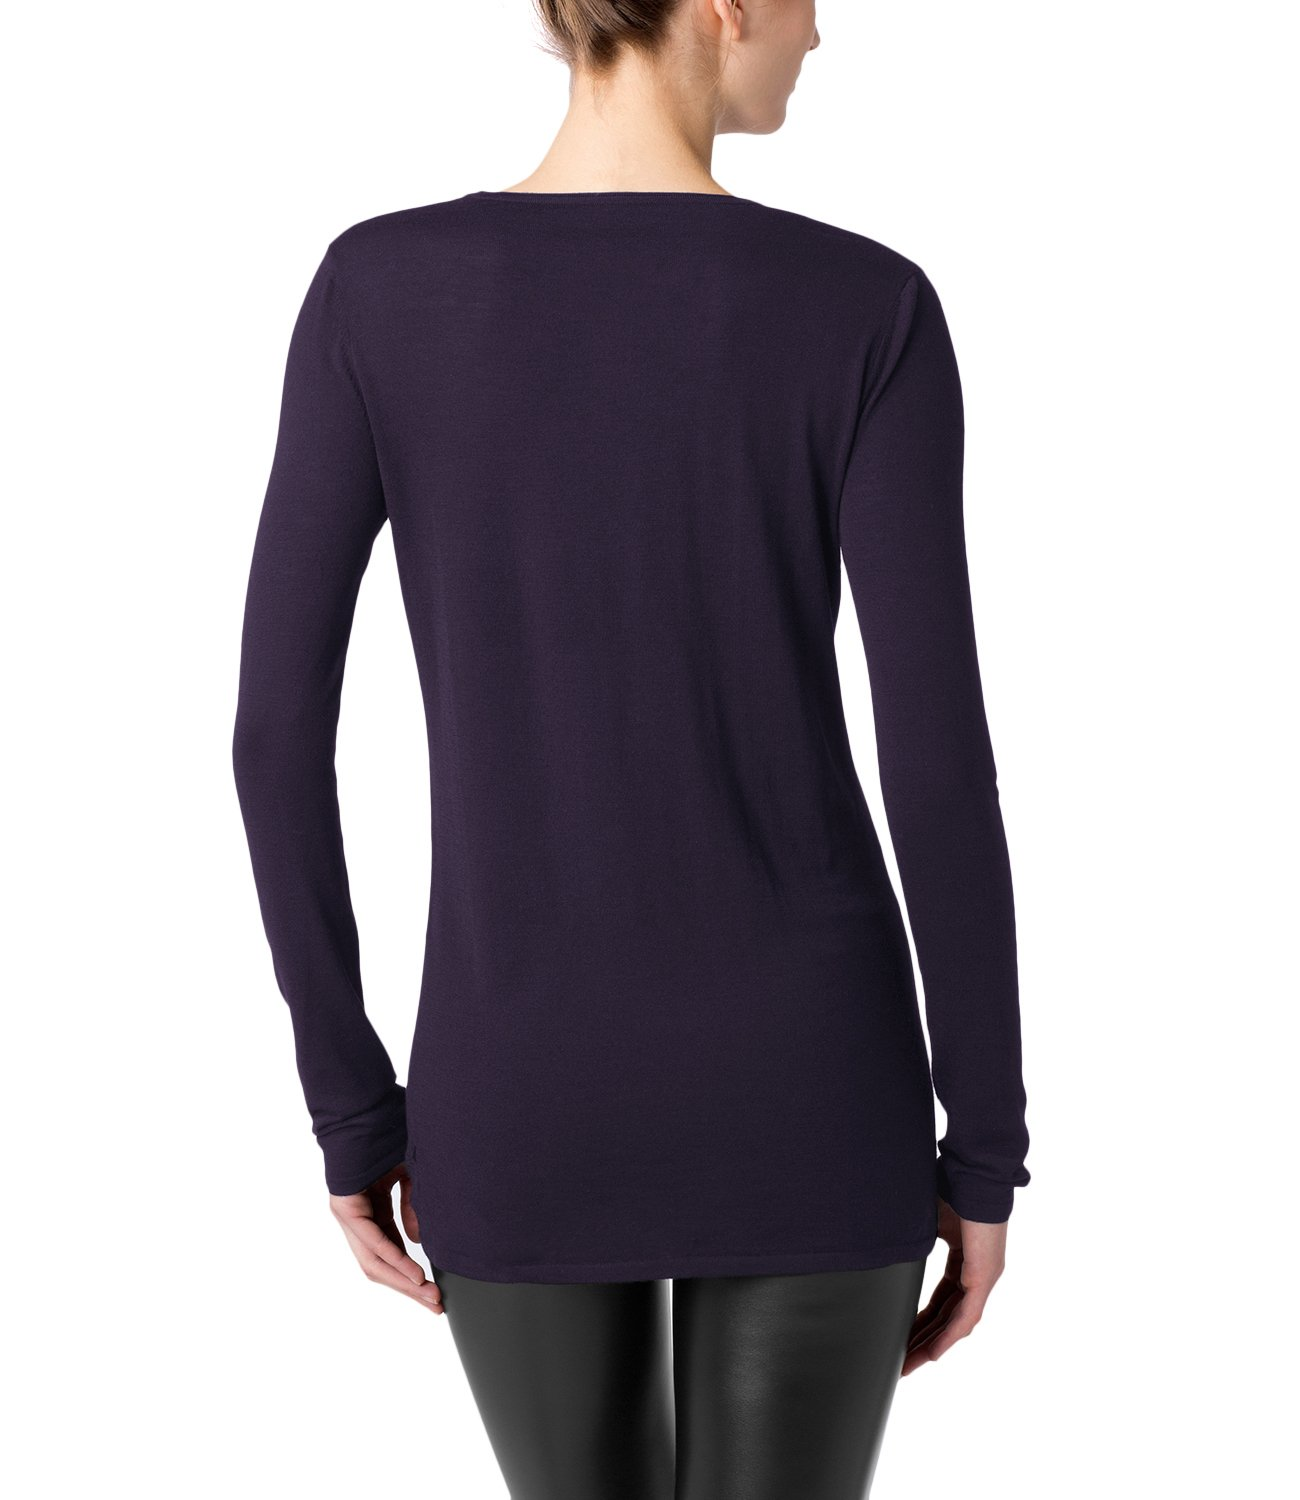 Wolford Fine Merino Pullover Crew Neck Women's Top Nightshade L by Wolford (Image #2)